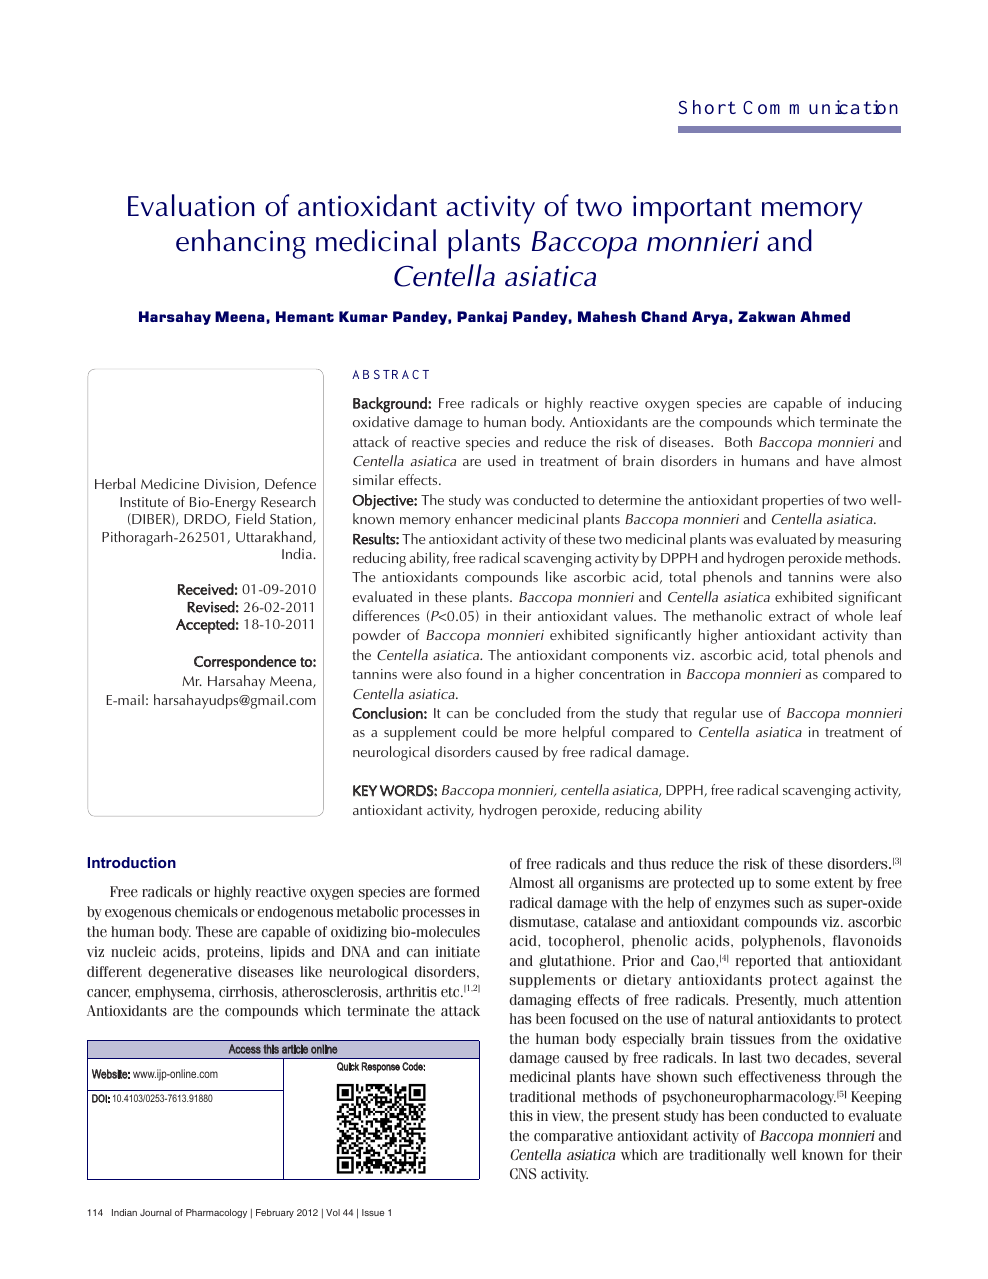 Evaluation of antioxidant activity of two important memory